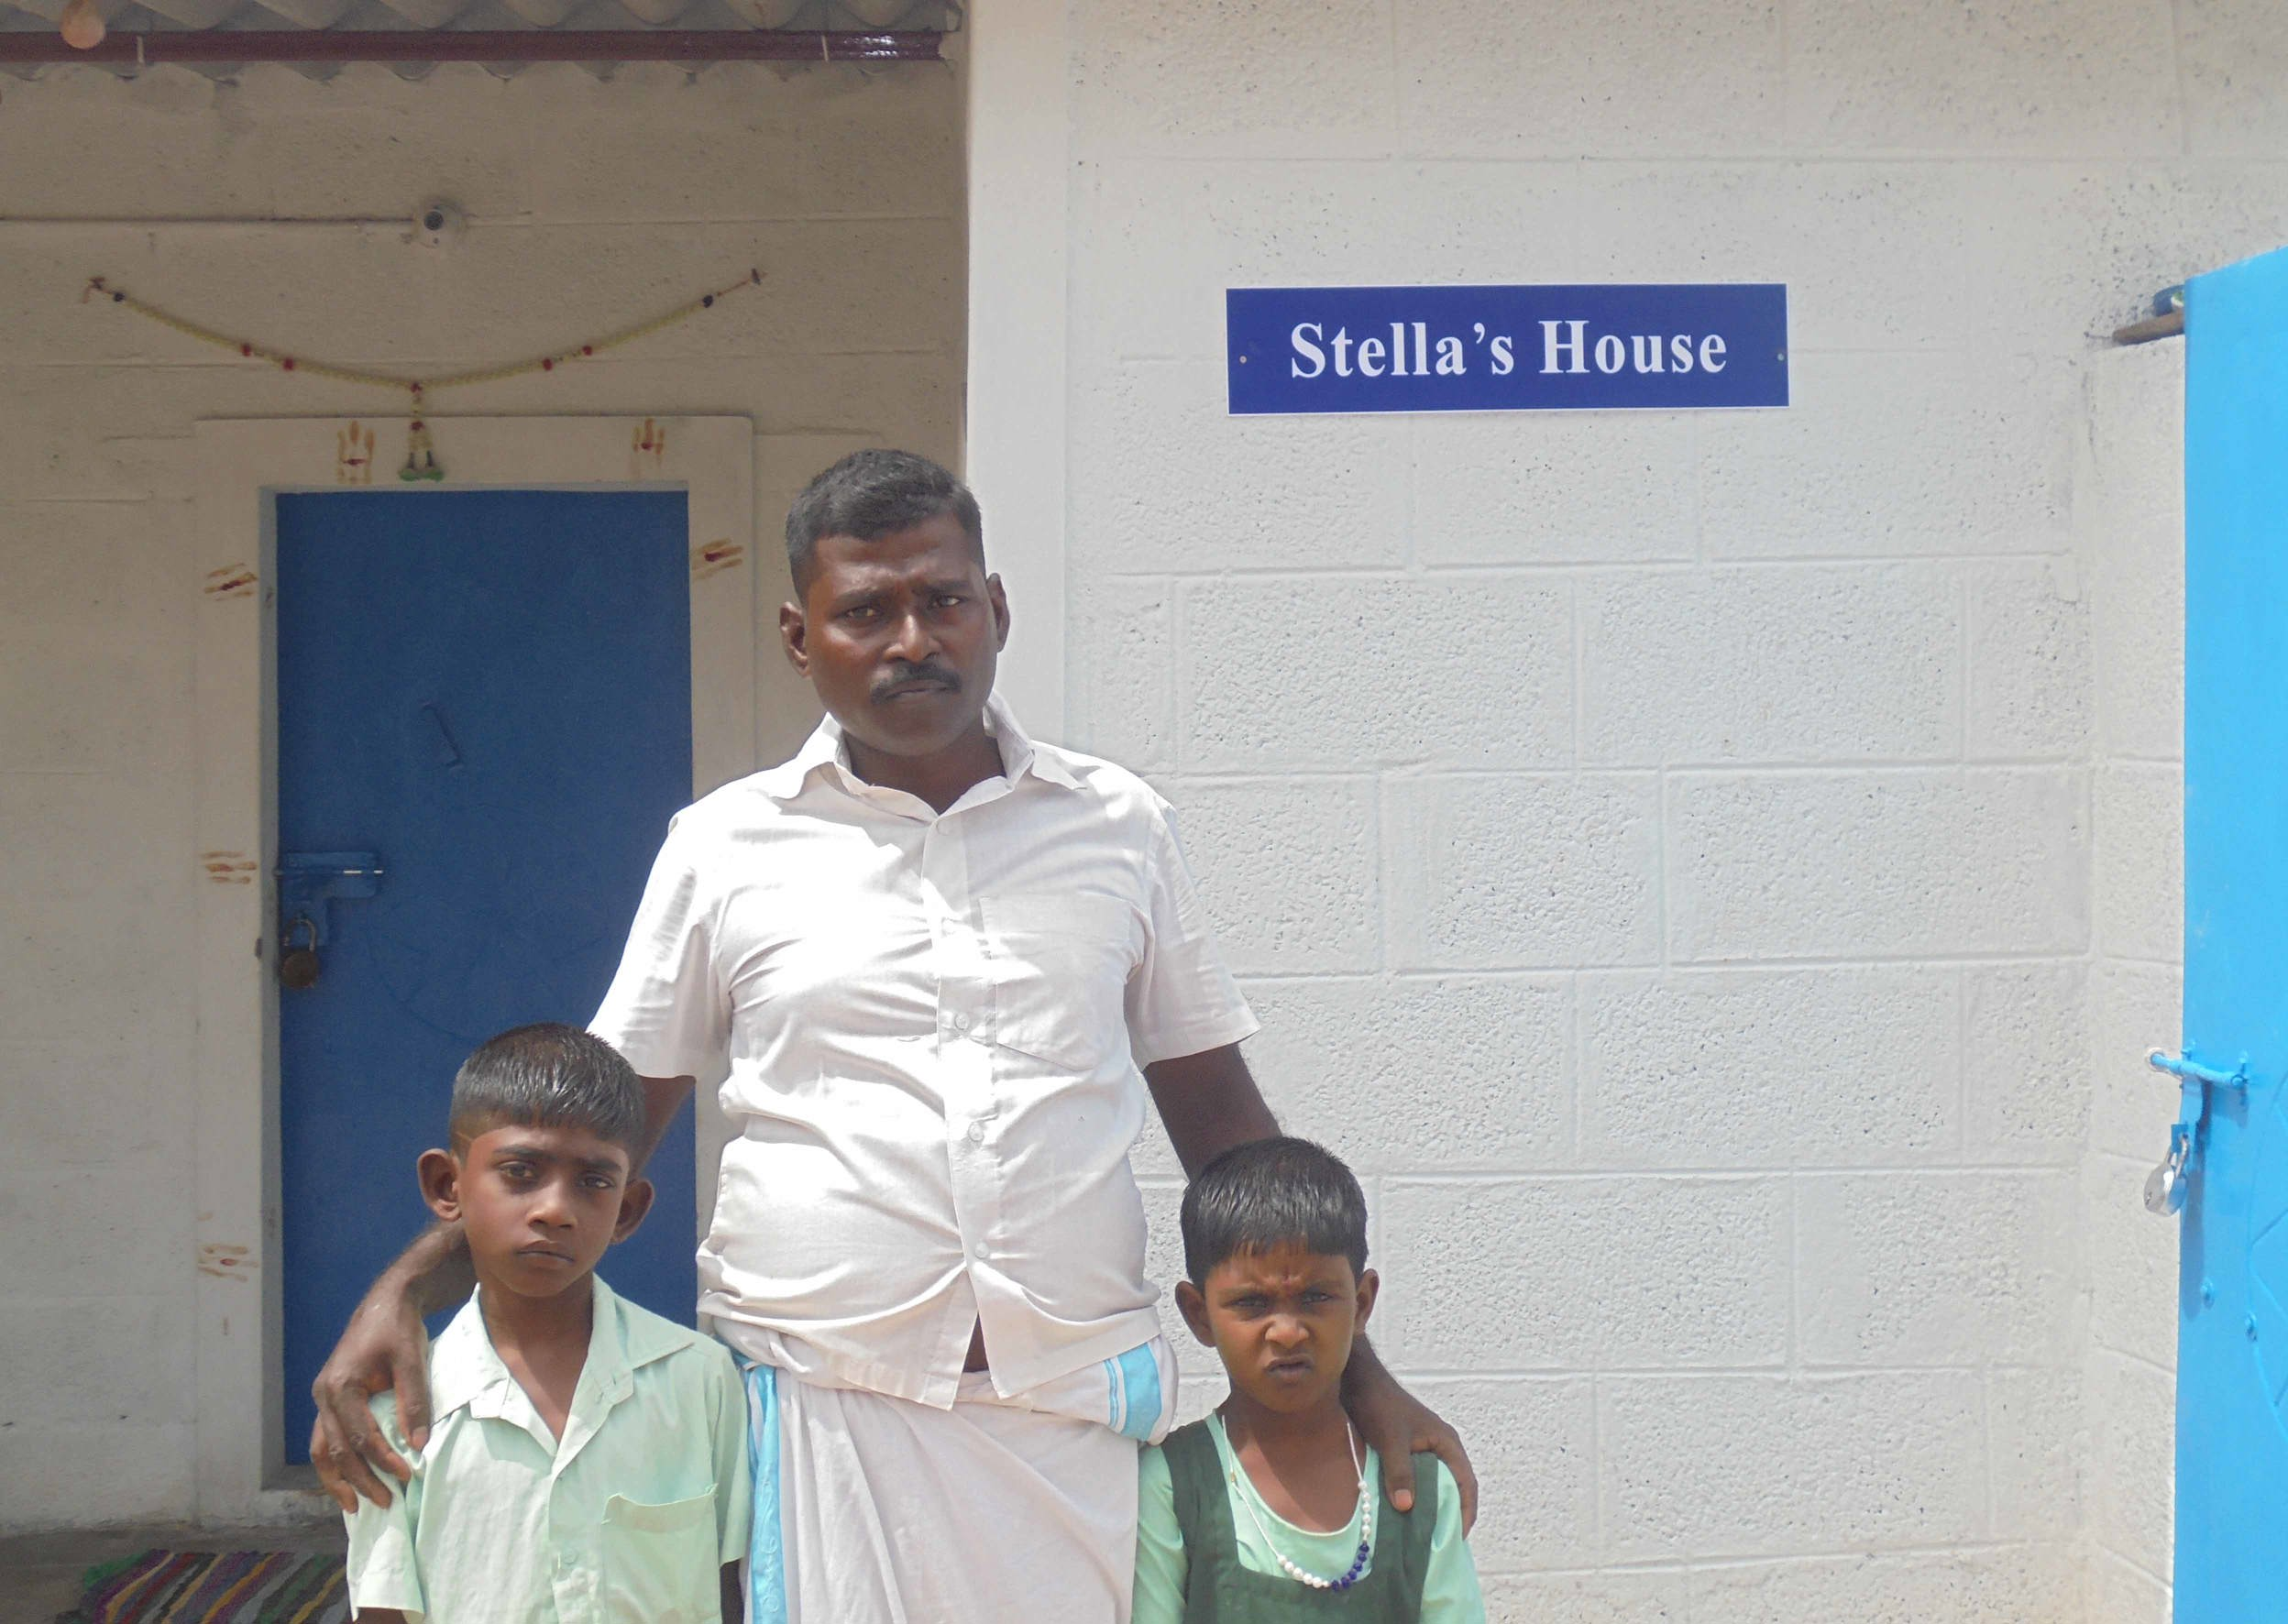 A father and his two children standing outside a house named Stella House